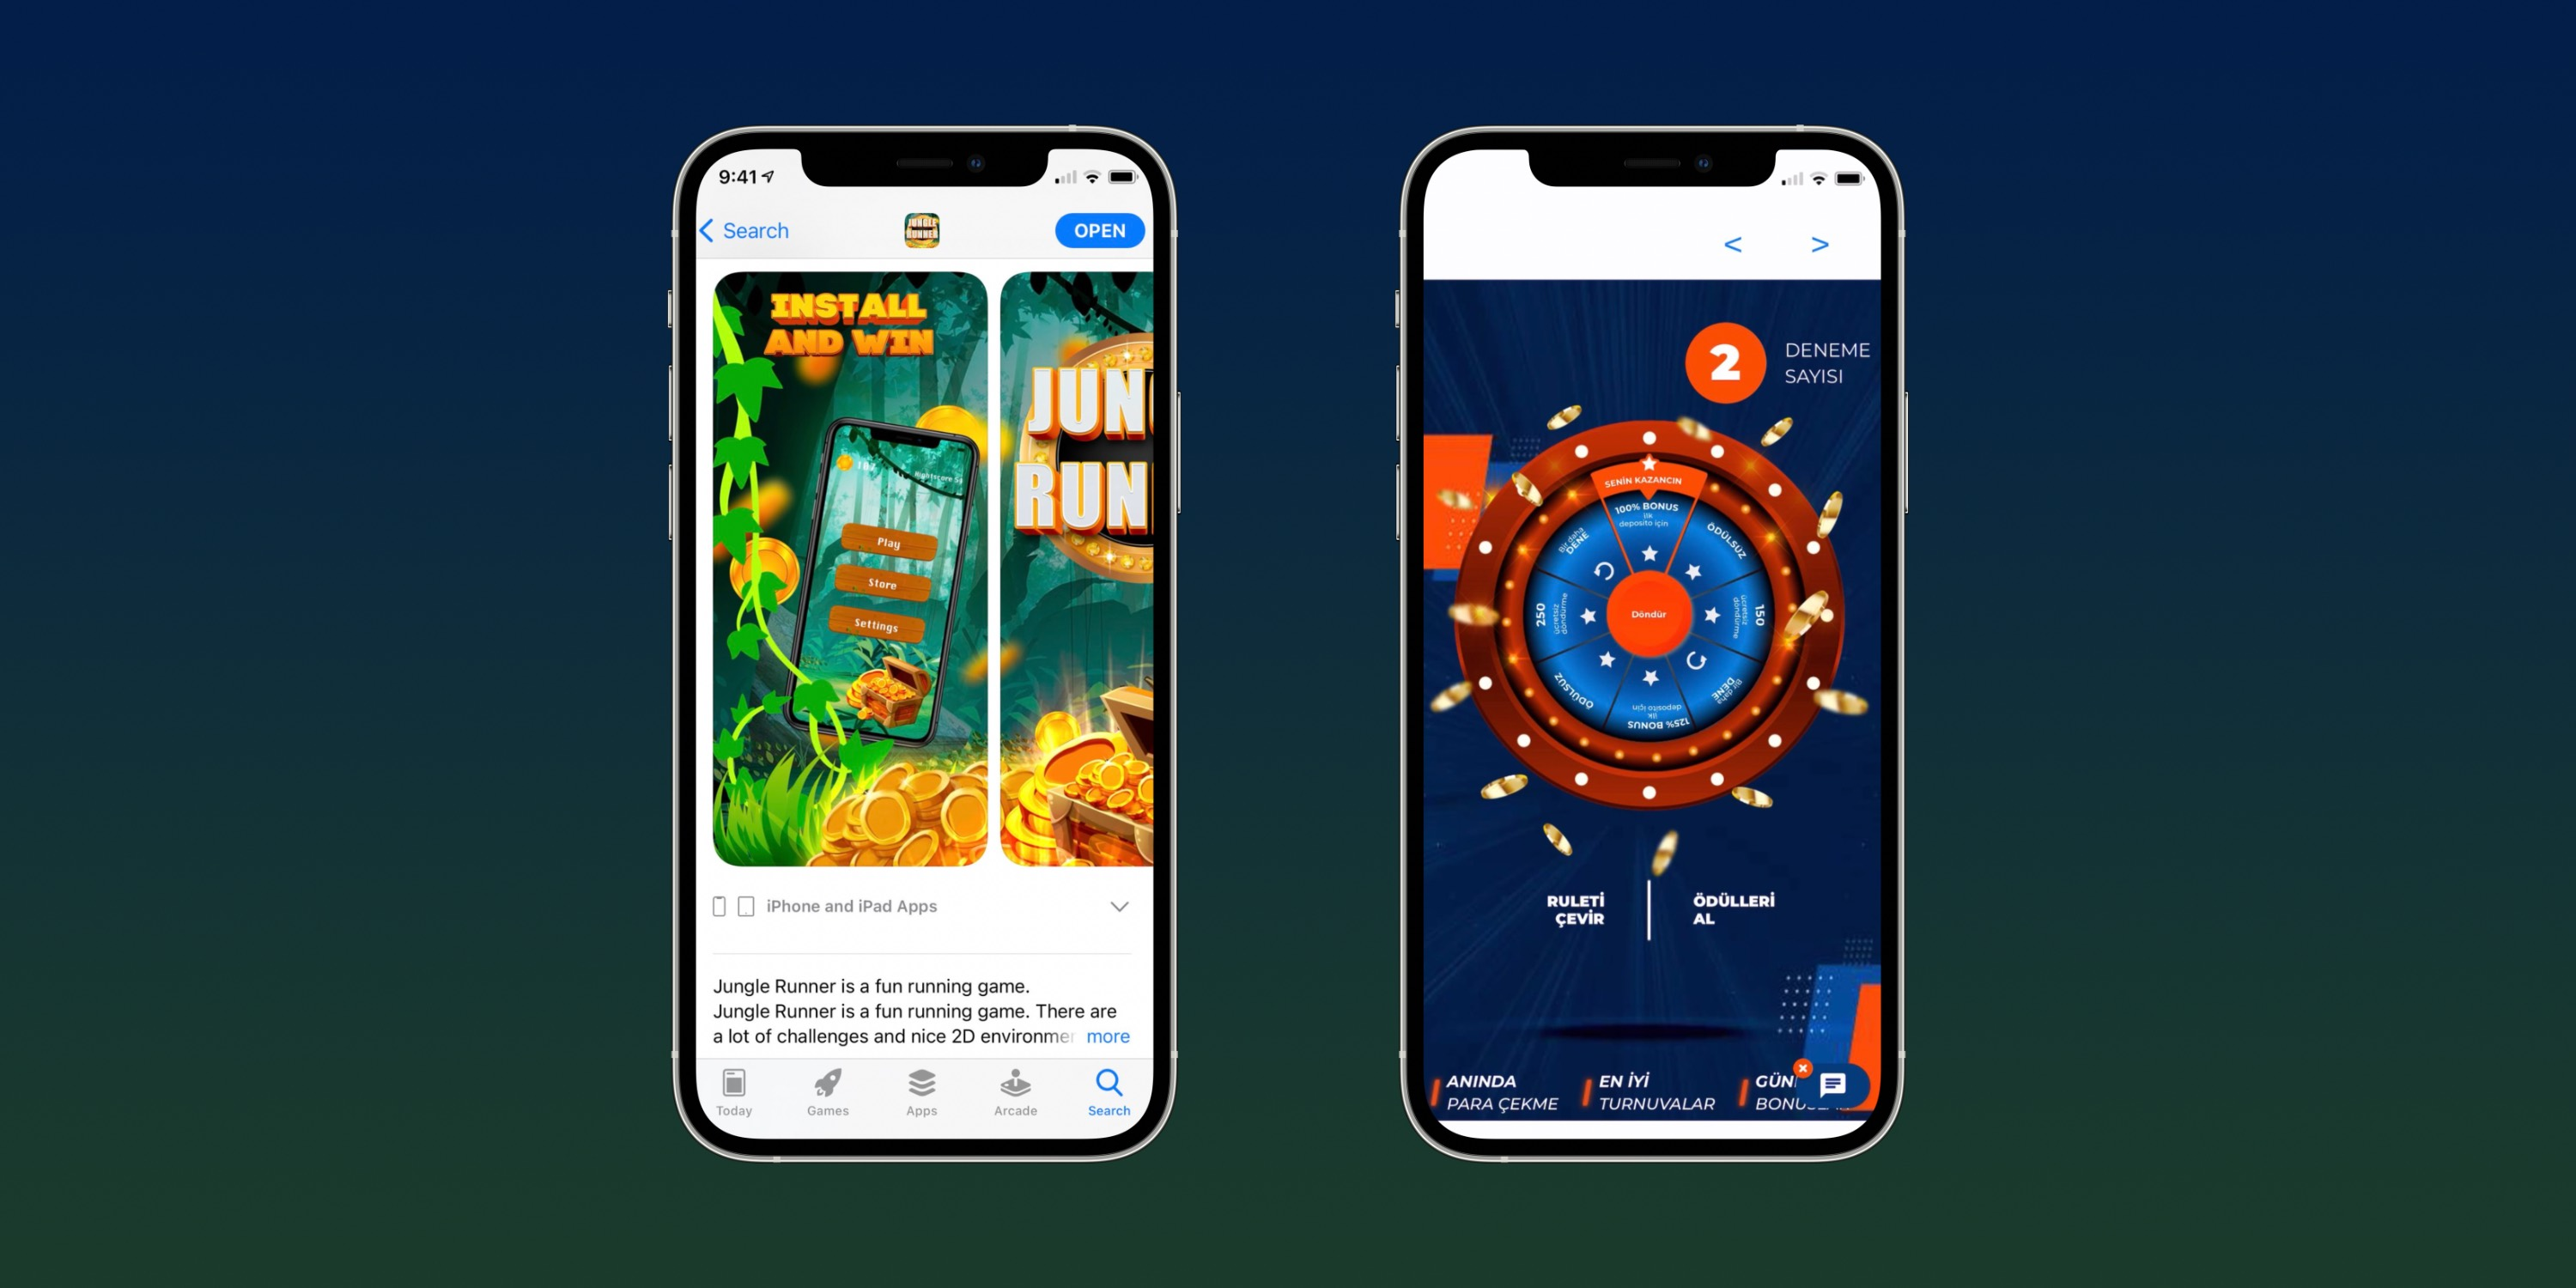 Latest App Store scam exposed is a kids game with a hidden online casino -  9to5Mac